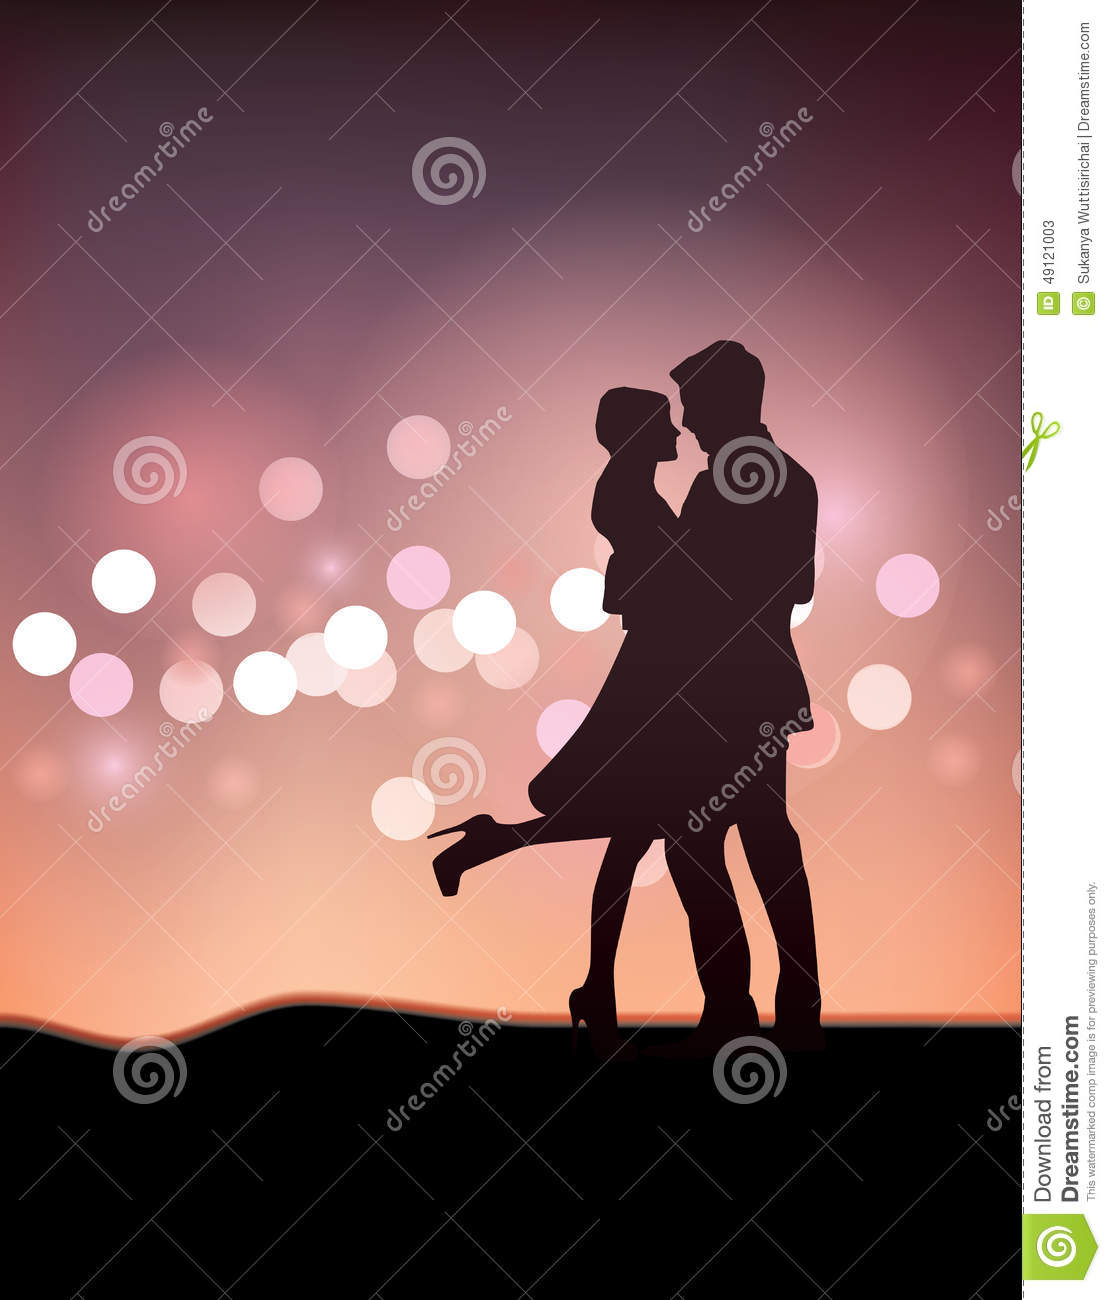 Couple Dancing Silhouette Illustration Stock Vector